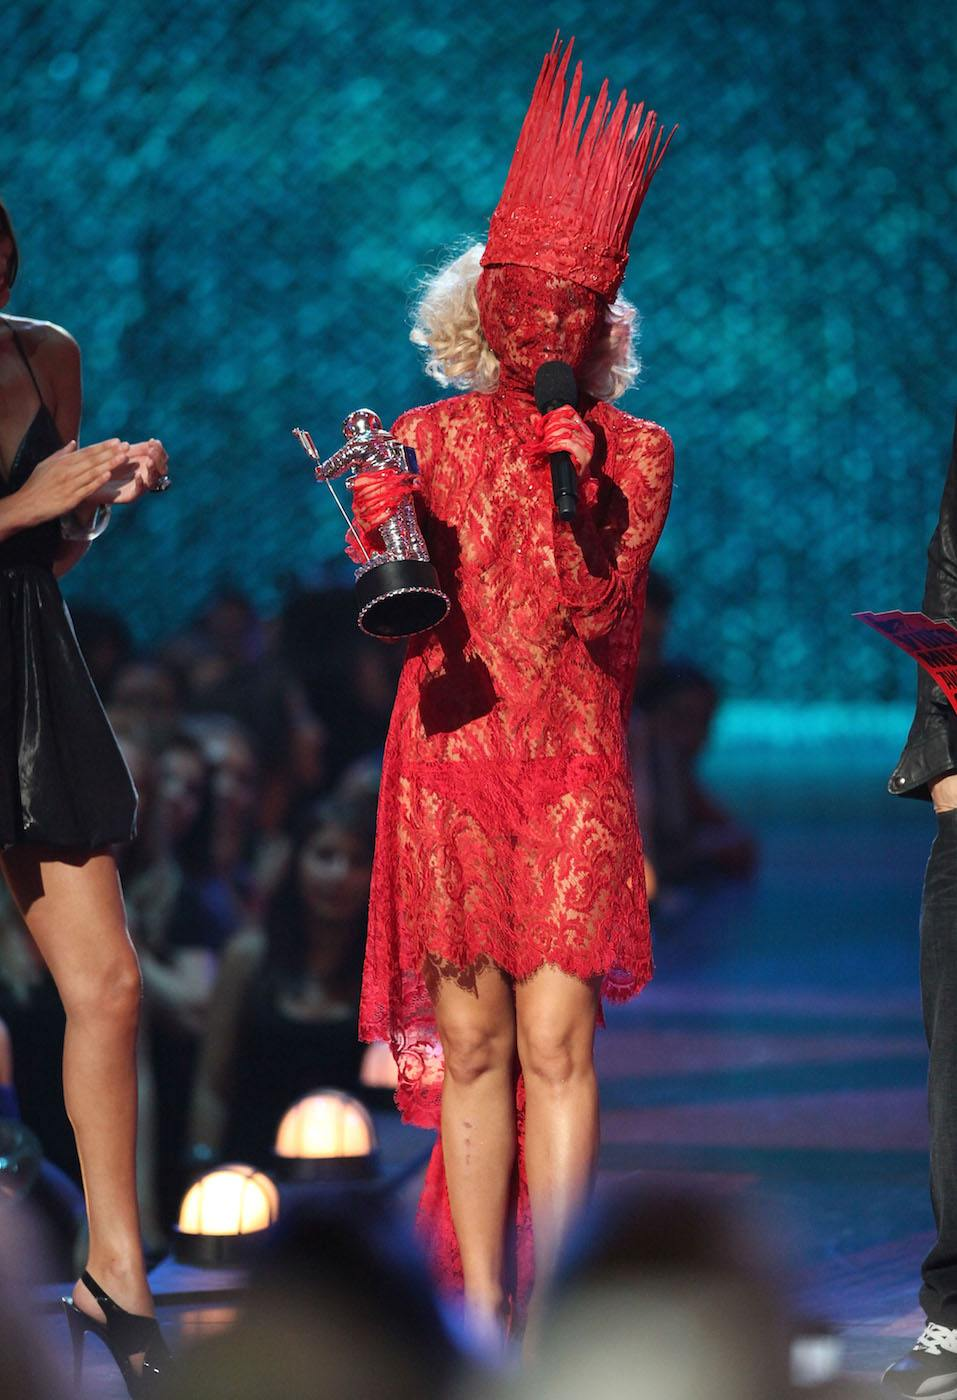 Lady Gaga accepts the award for 'Best New Artist' during the 2009 MTV Video Music Awards at Radio City Music Hall